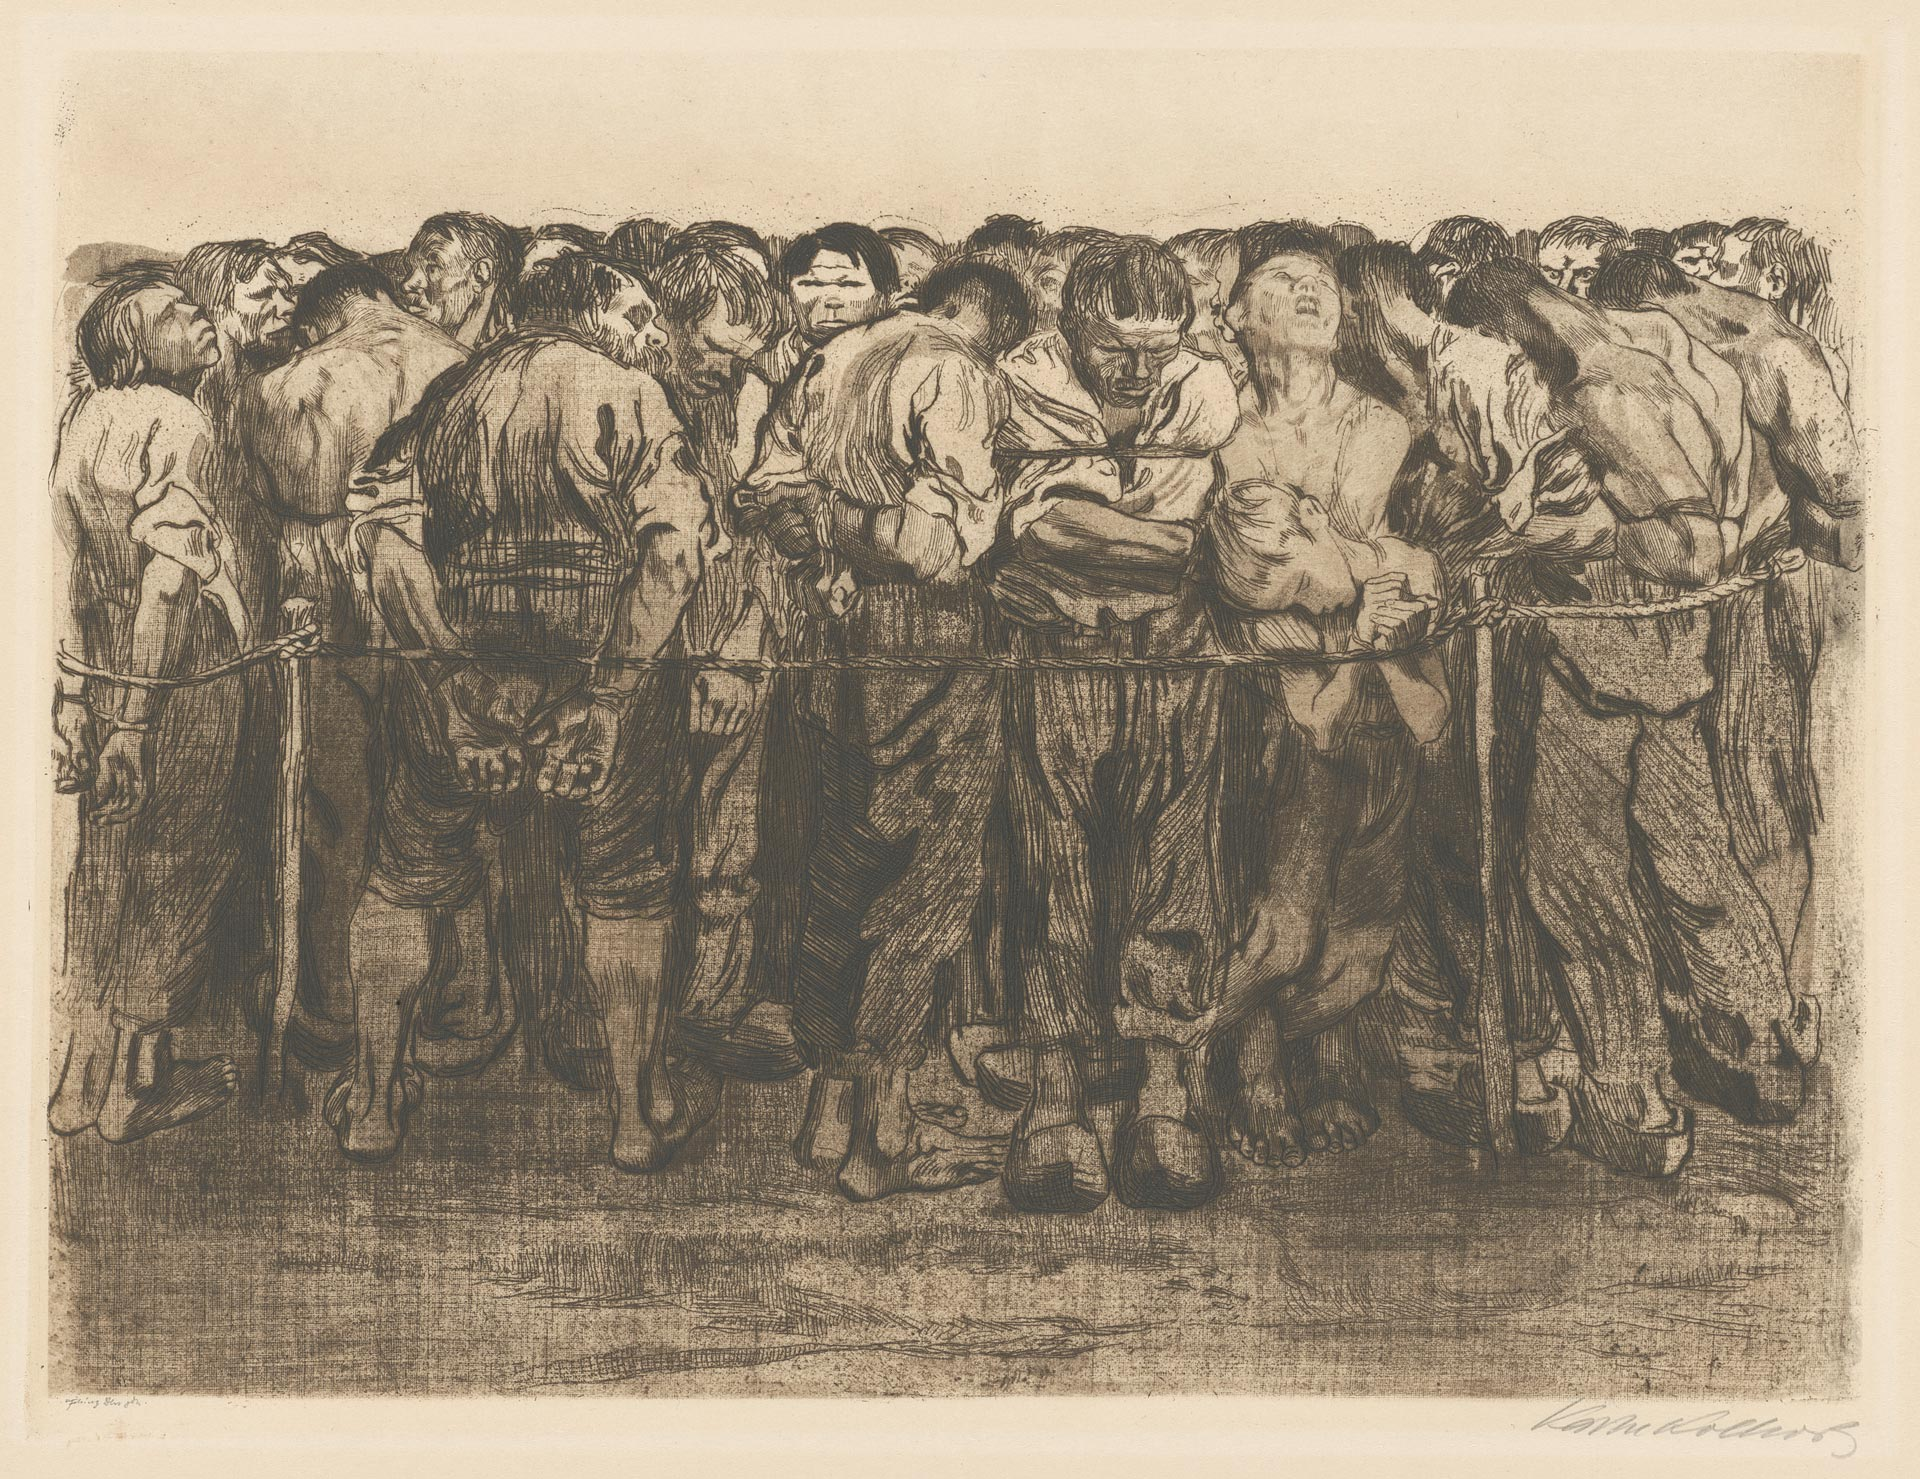 Käthe Kollwitz, The Prisoners, sheet 7 of the cycle »Peasants War«, 1908, line etching, drypoint, sandpaper and soft ground with imprint of fabric and Ziegler's transfer paper, Kn 102 IX a, Cologne Kollwitz Collection © Käthe Kollwitz Museum Köln